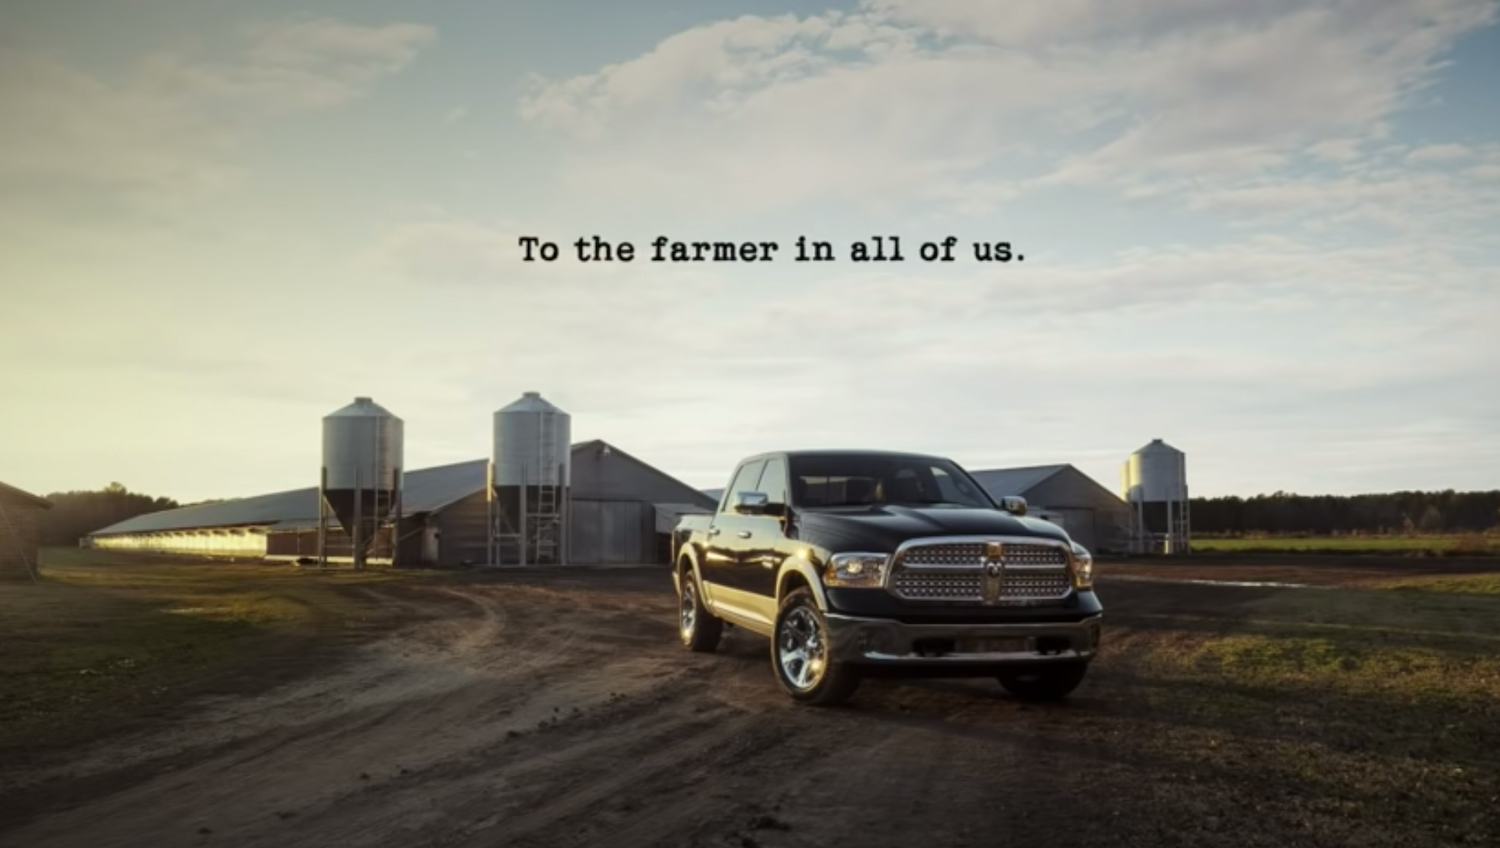 The 6 best car ads, according to Hagerty readers thumbnail